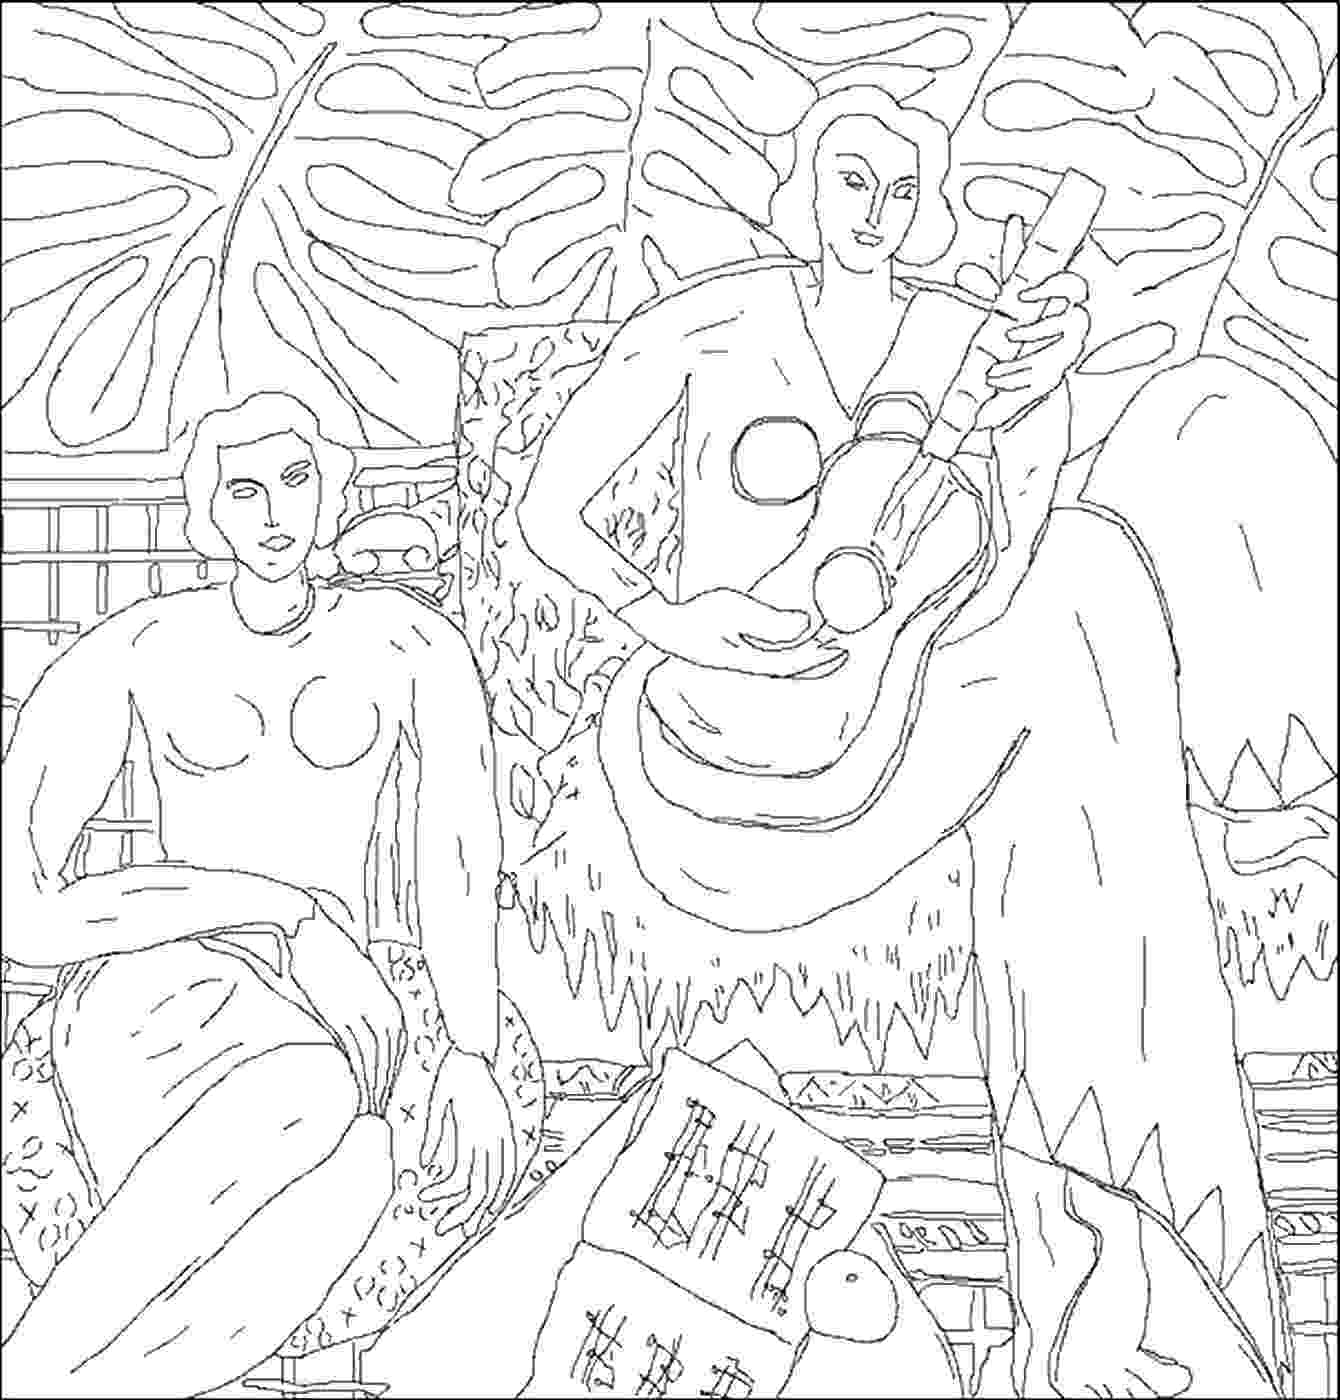 famous artists coloring pages famous art work coloring pages classroom doodles coloring famous pages artists